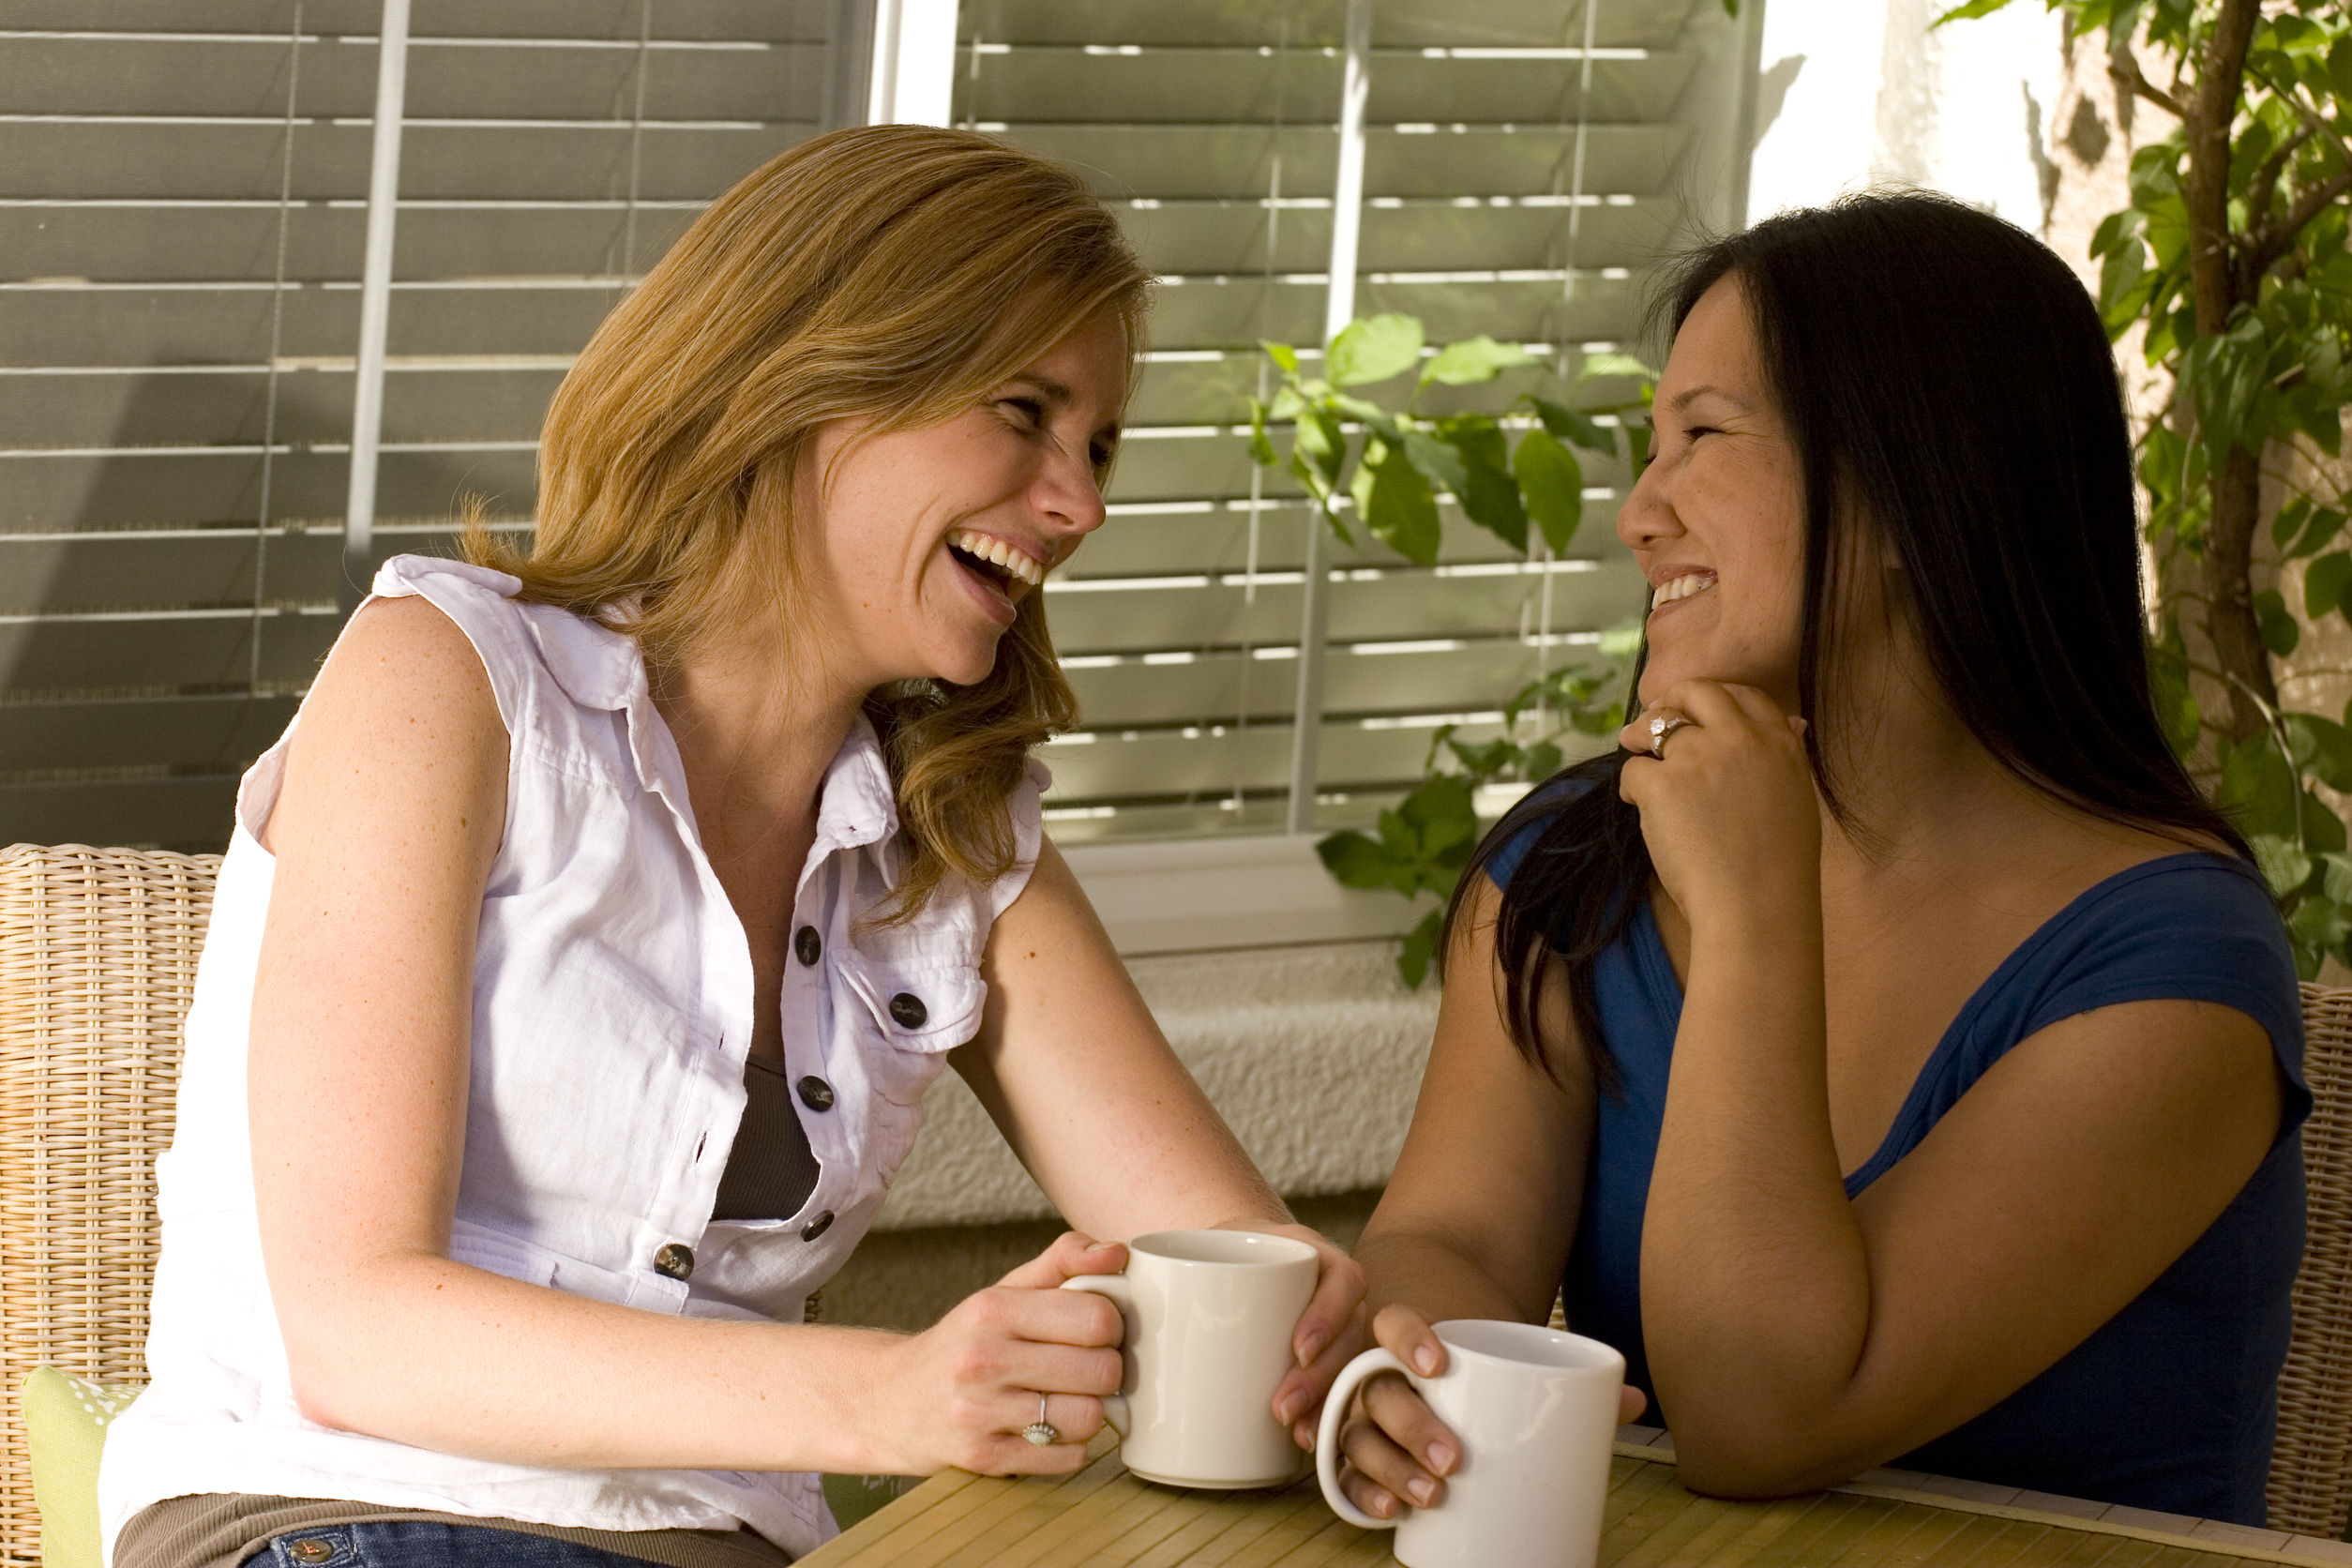 Two women having coffee laughing